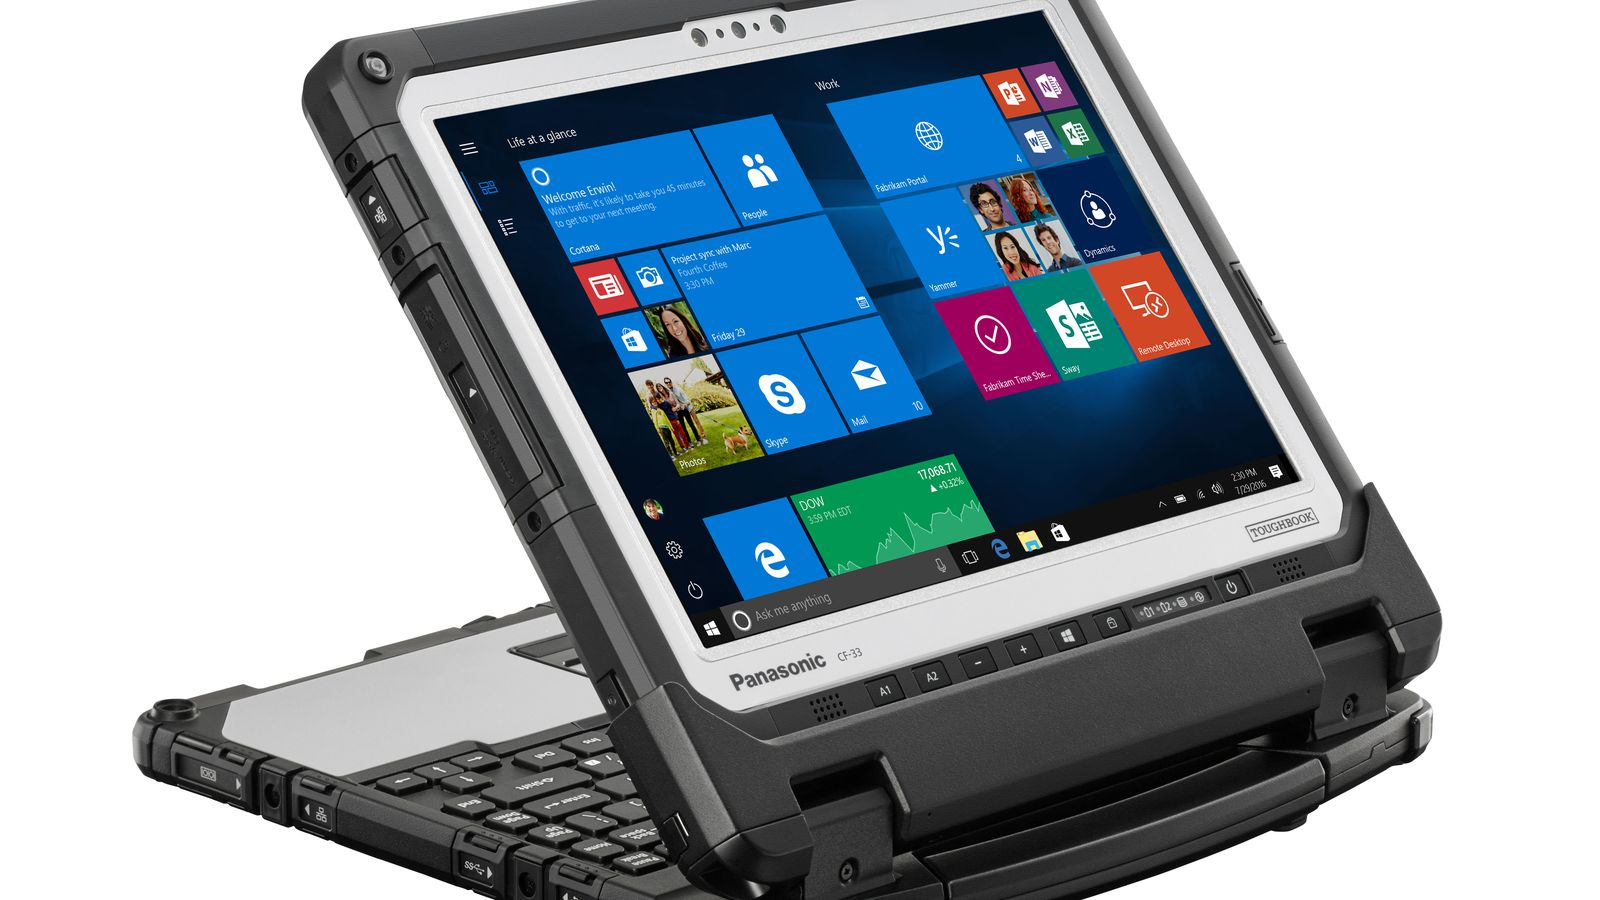 Panasonic's latest Toughbook hides a surprisingly good